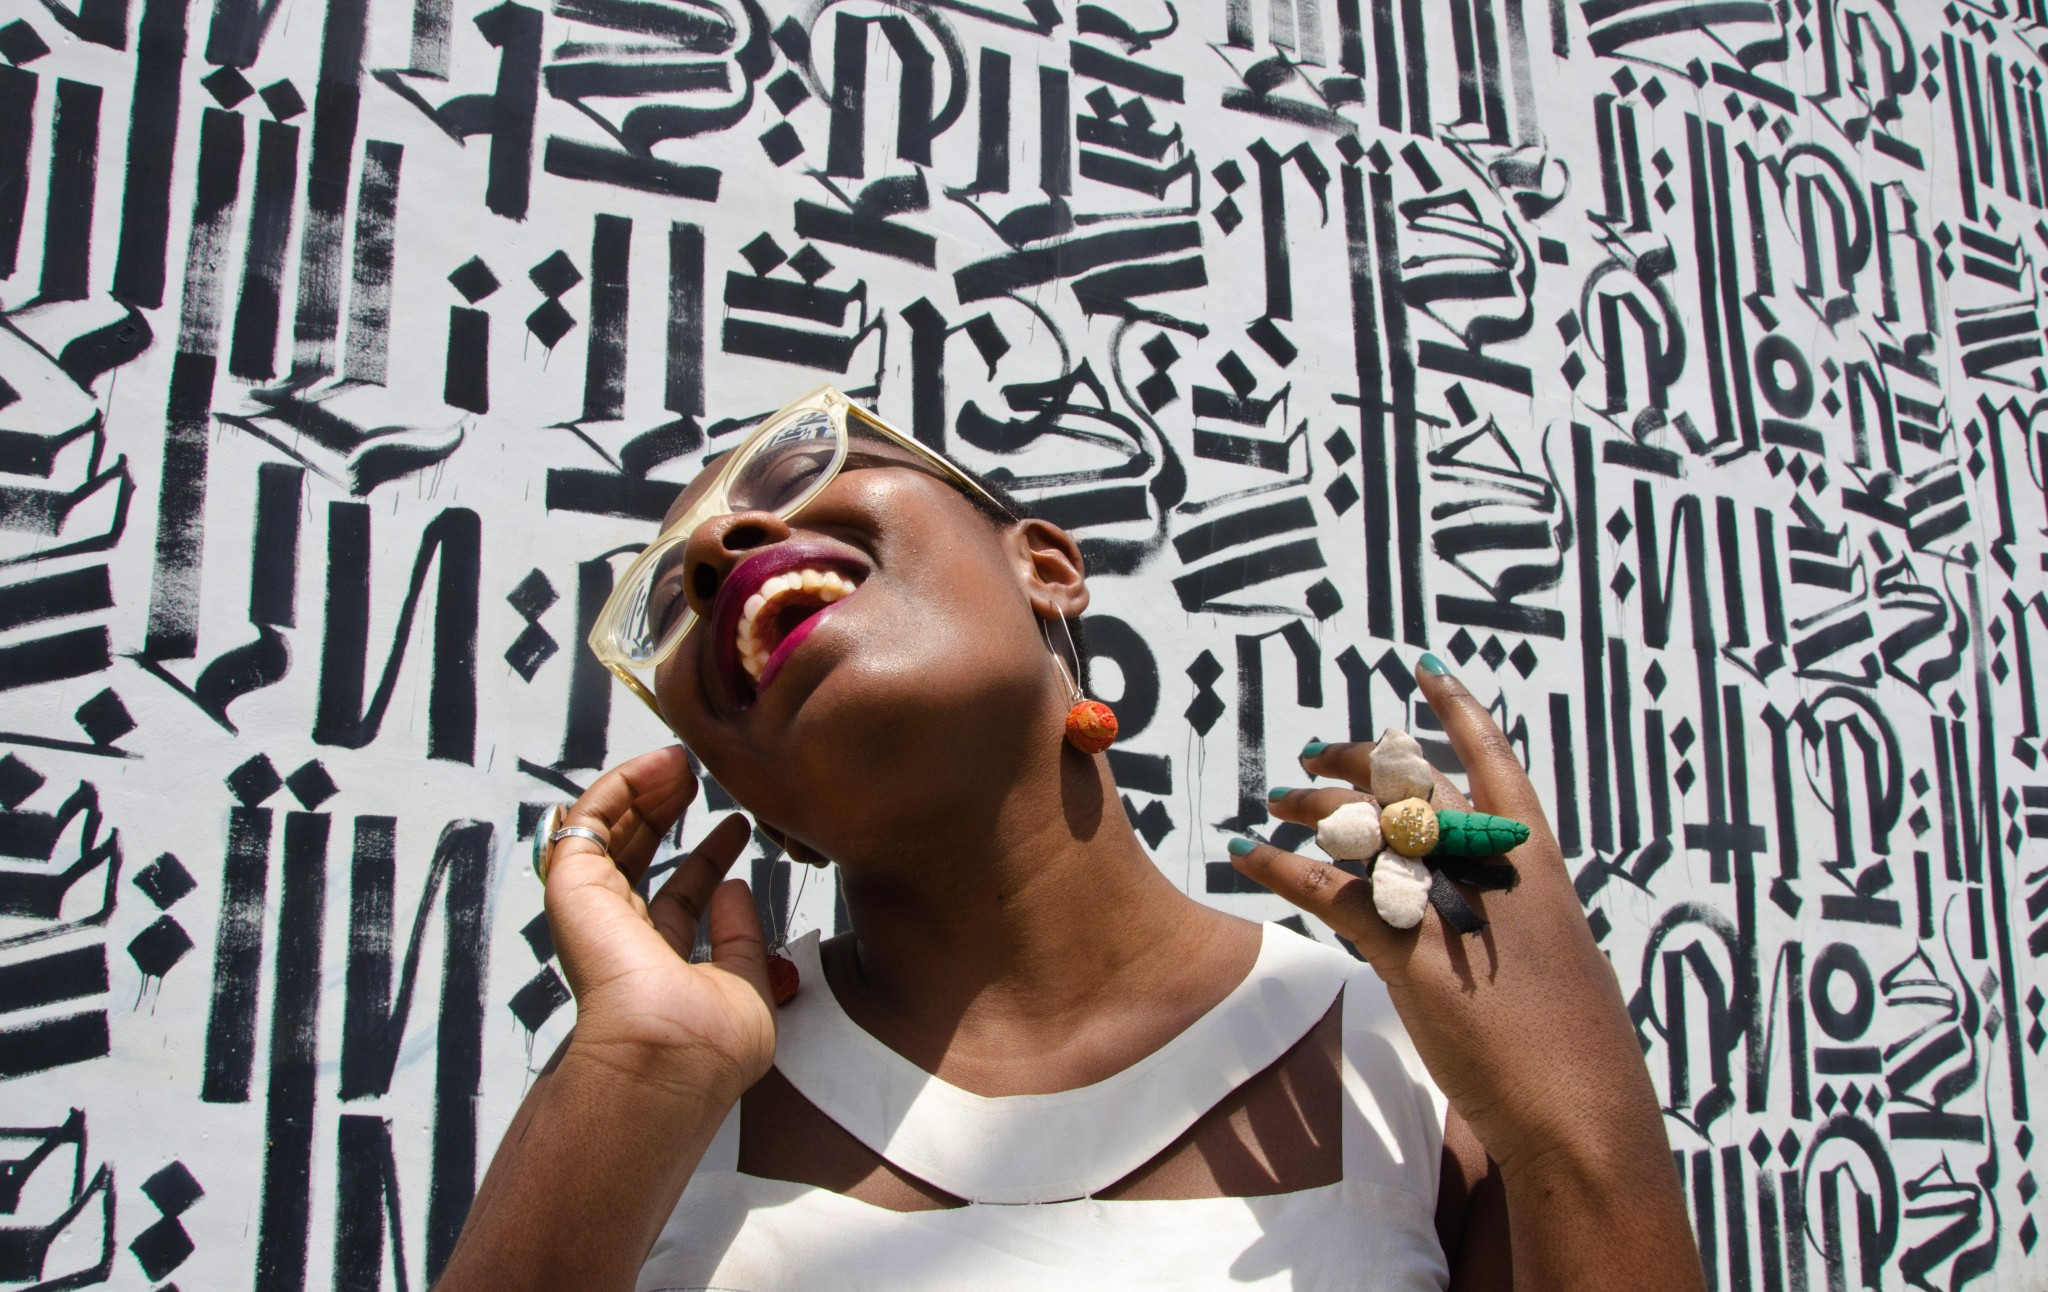 Cecile McLorin Salvant, professional jazz vocalist. - NYC Photographer (C) Max Reed